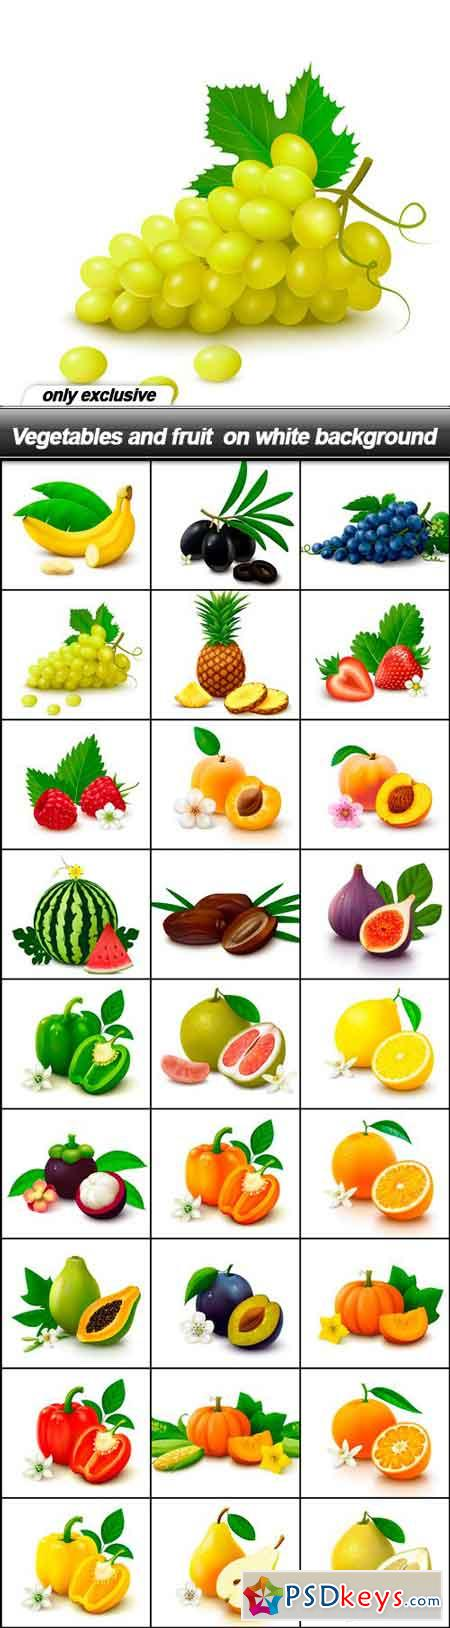 Vegetables and fruit on white background - 27 EPS